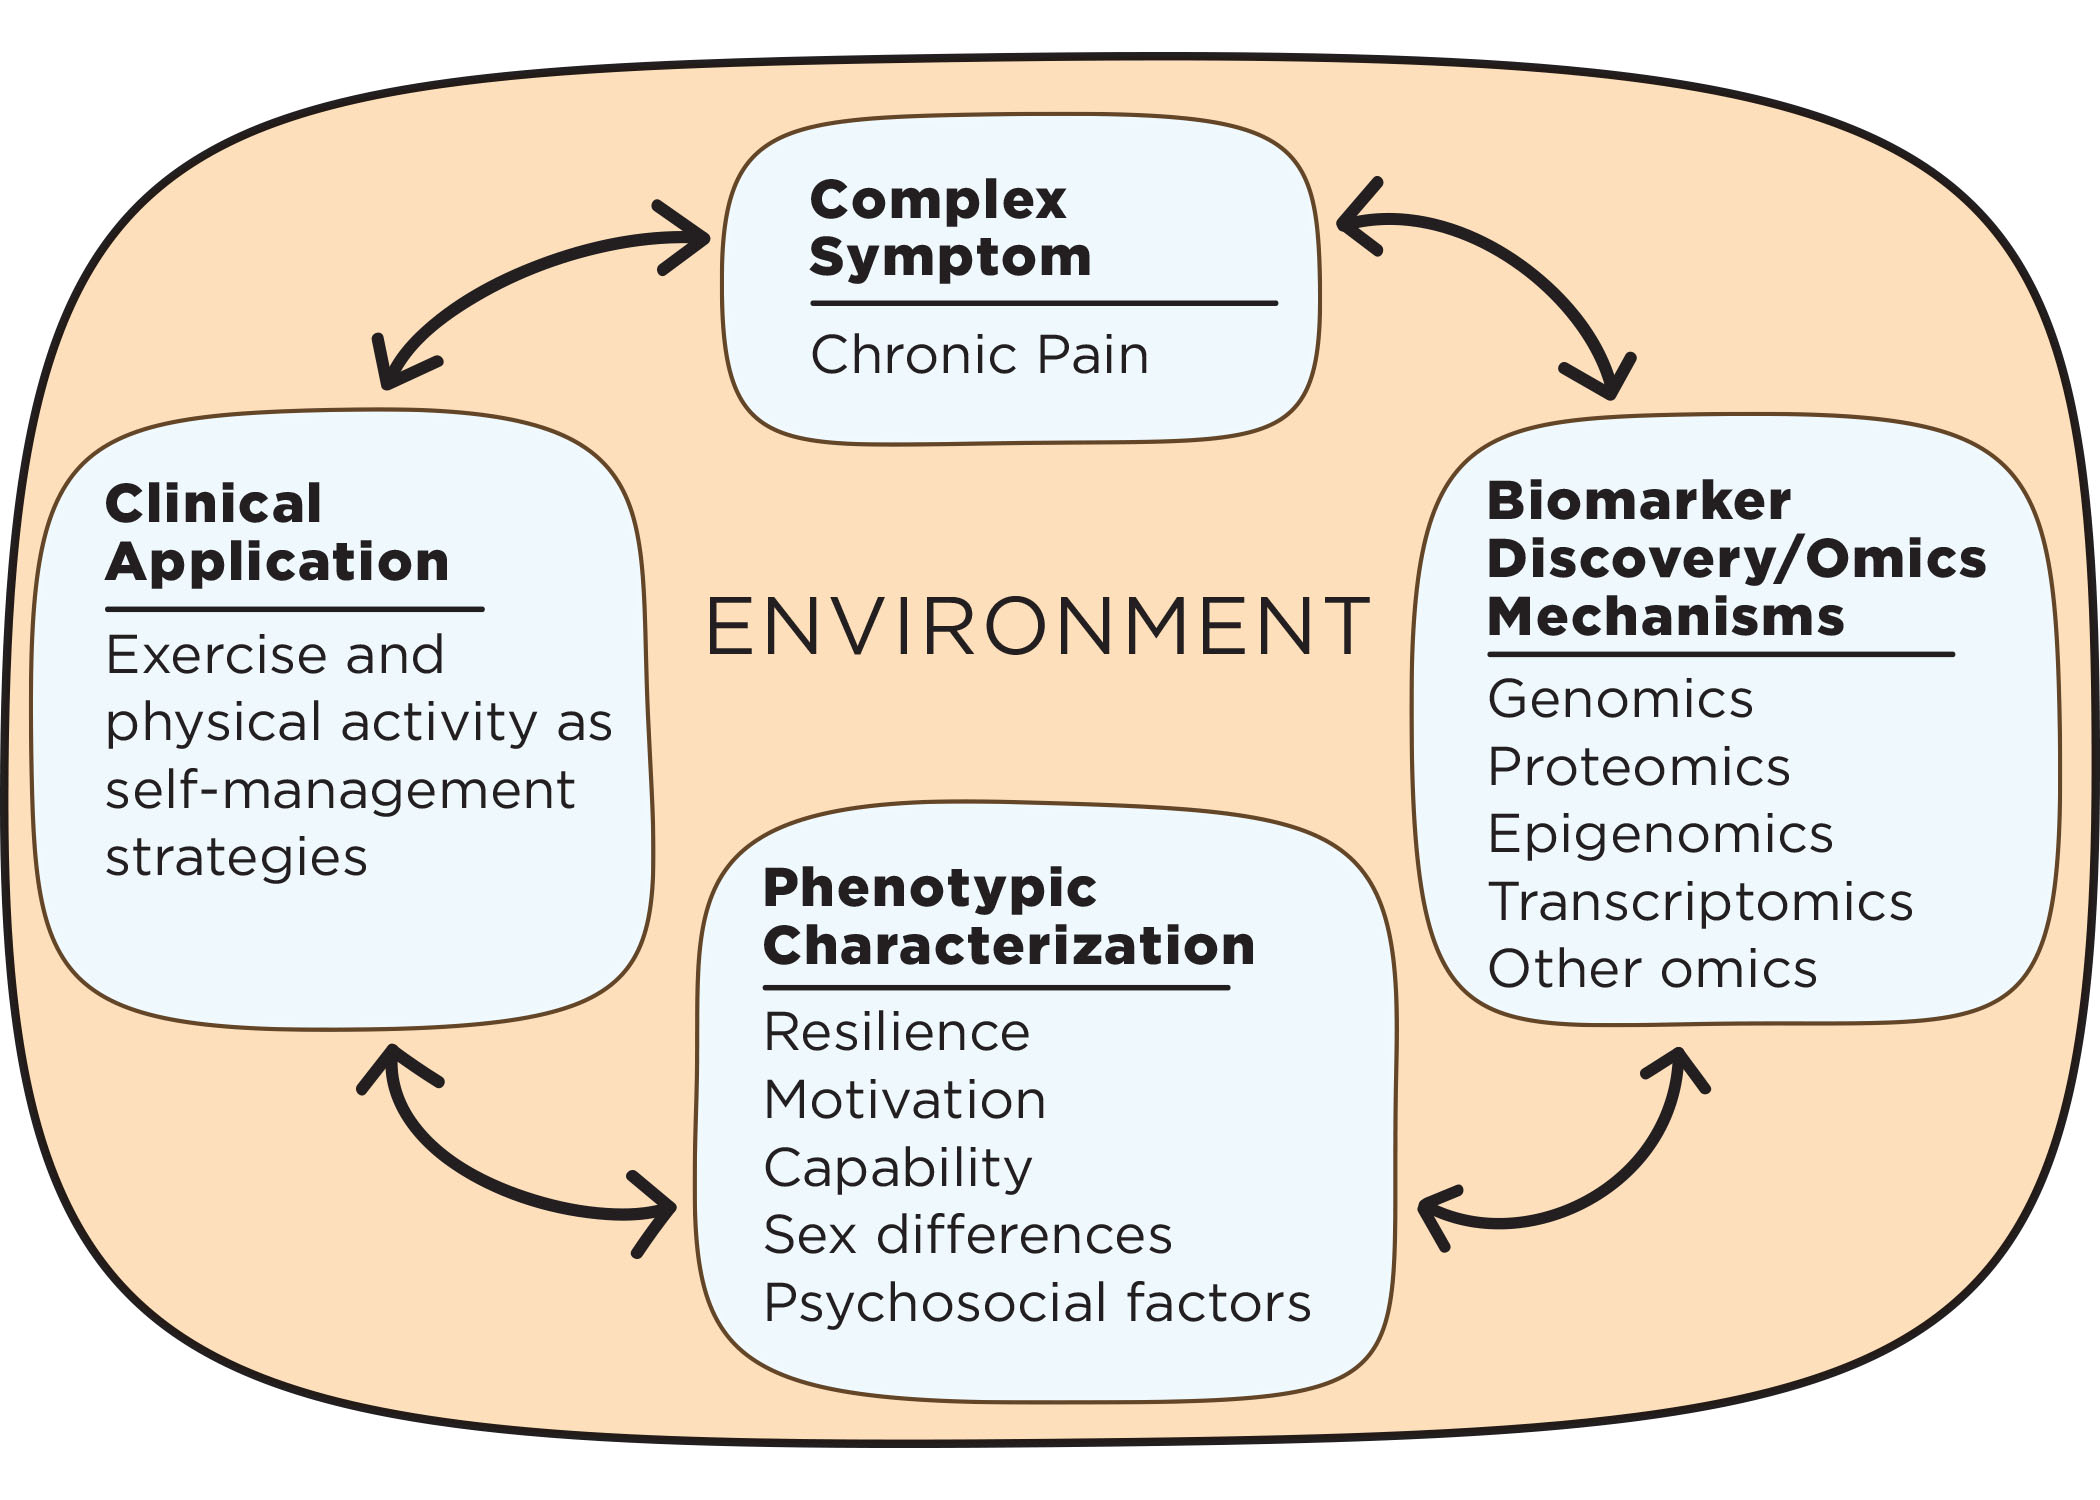 Chart with complex symptom (chronic pain), biomarker discovery/omics mechanisms (genomics, proteomics, epigenomics, transcriptomics, other omics), phenotypic characterization (resilience, motivation, capability, sex differences, psychosocial factors), and clinical application (exercise and physical activity as self-management strategies) in a loop